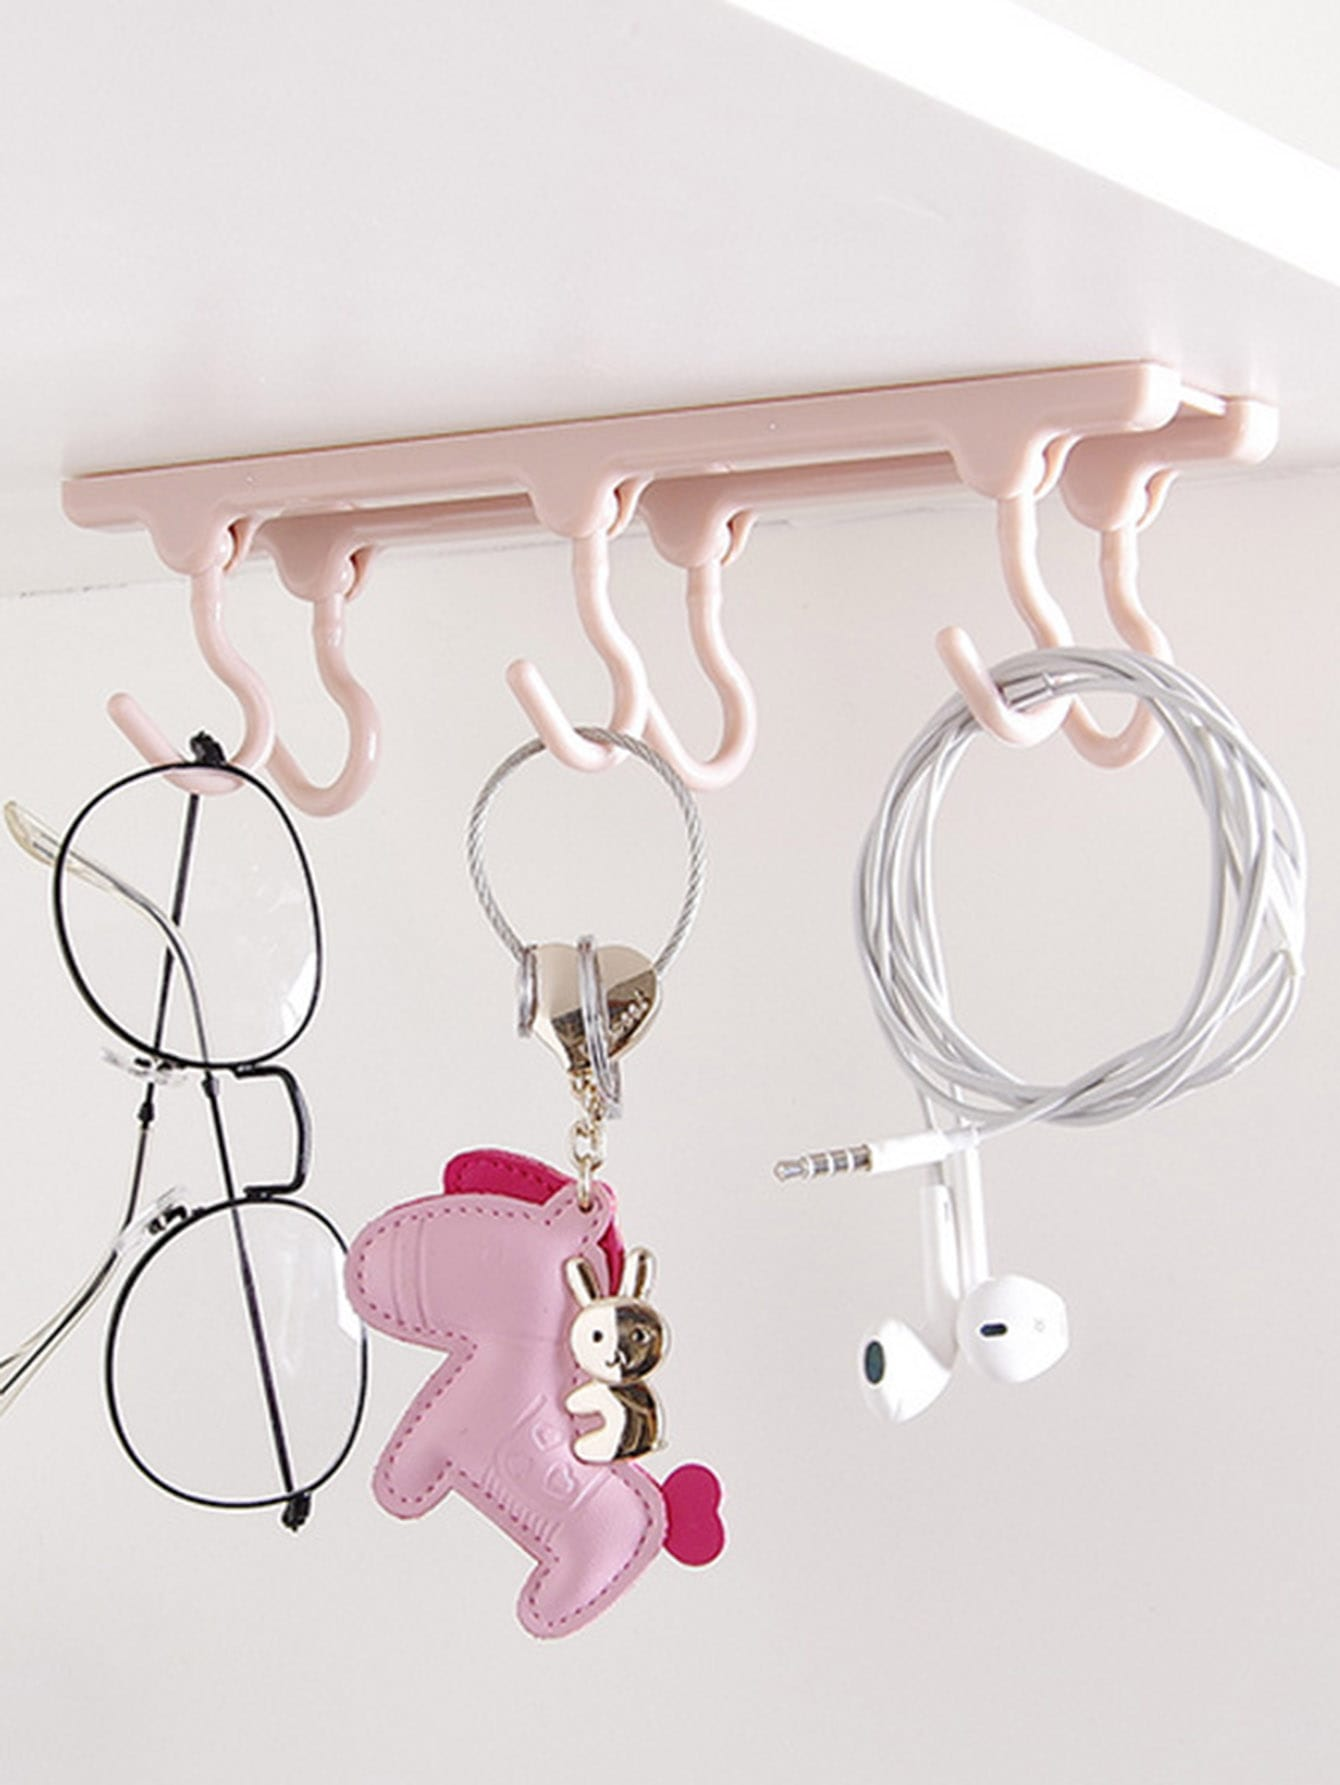 6 Hook Wall Mounted Rack 51cm household ornament shelf wall commodity shelf wall mounted hook wall bracket